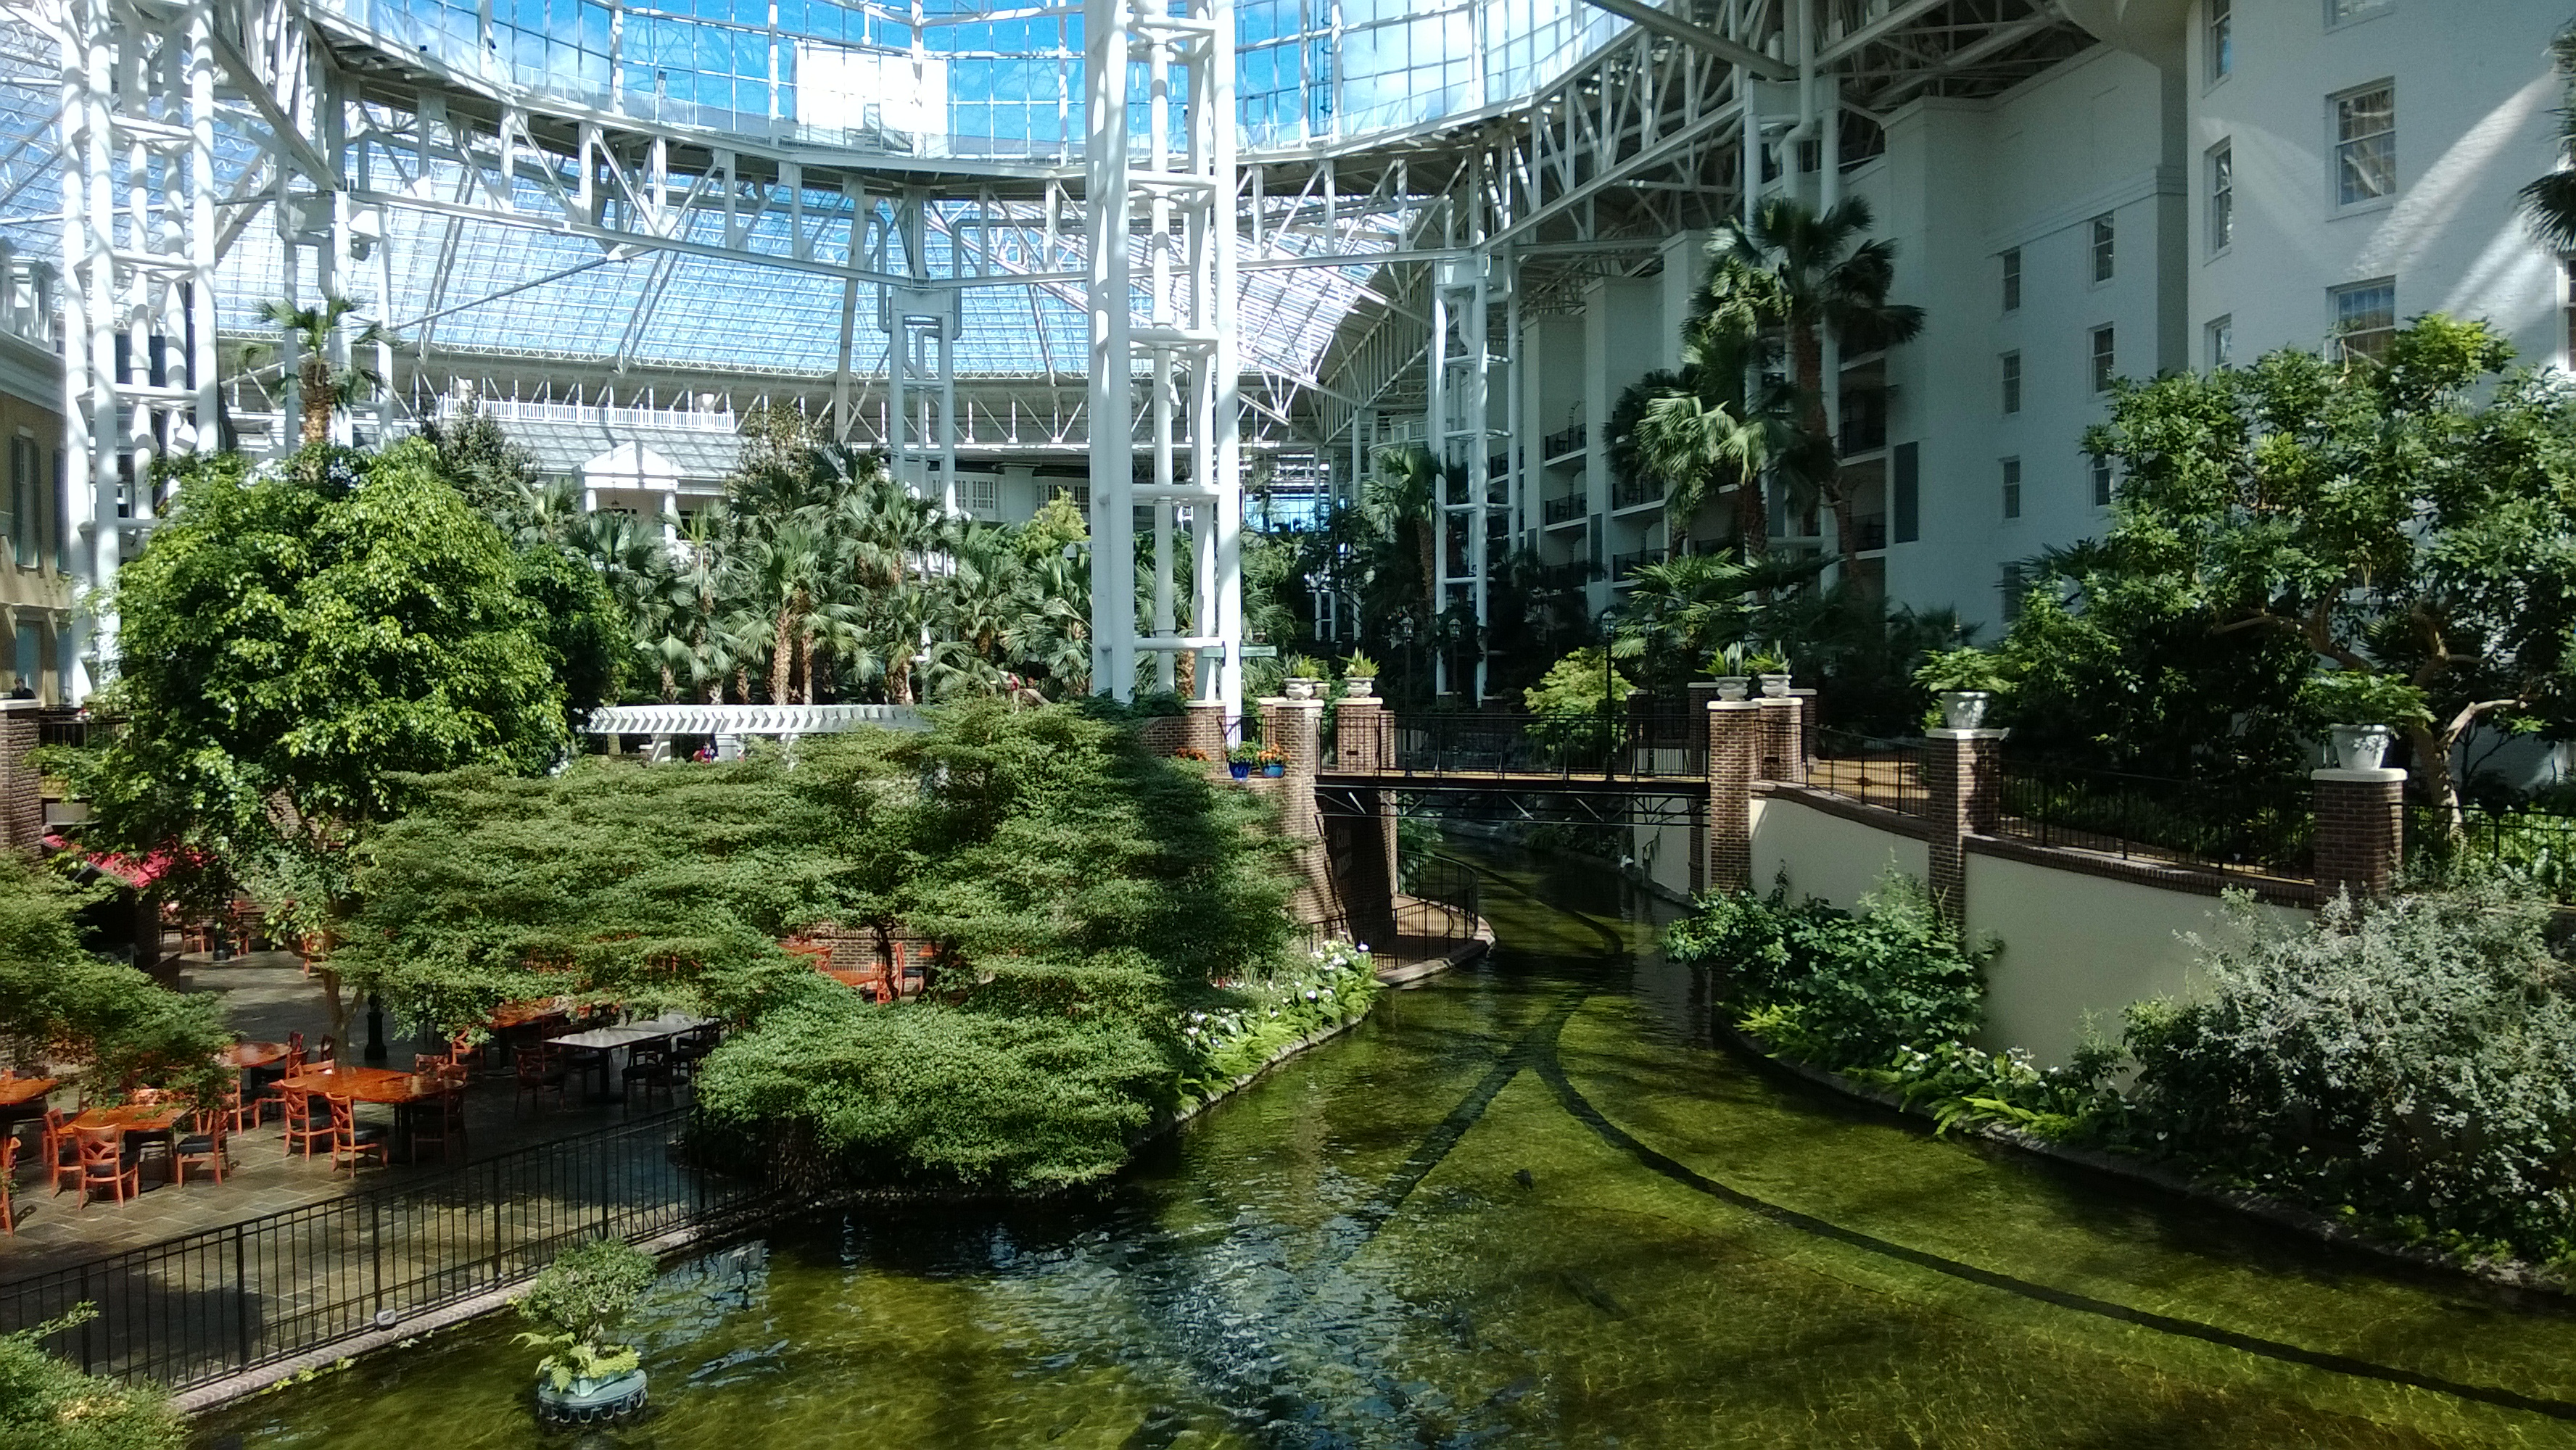 Gaylord Opryland Hotel & Resort, Nashville, TN